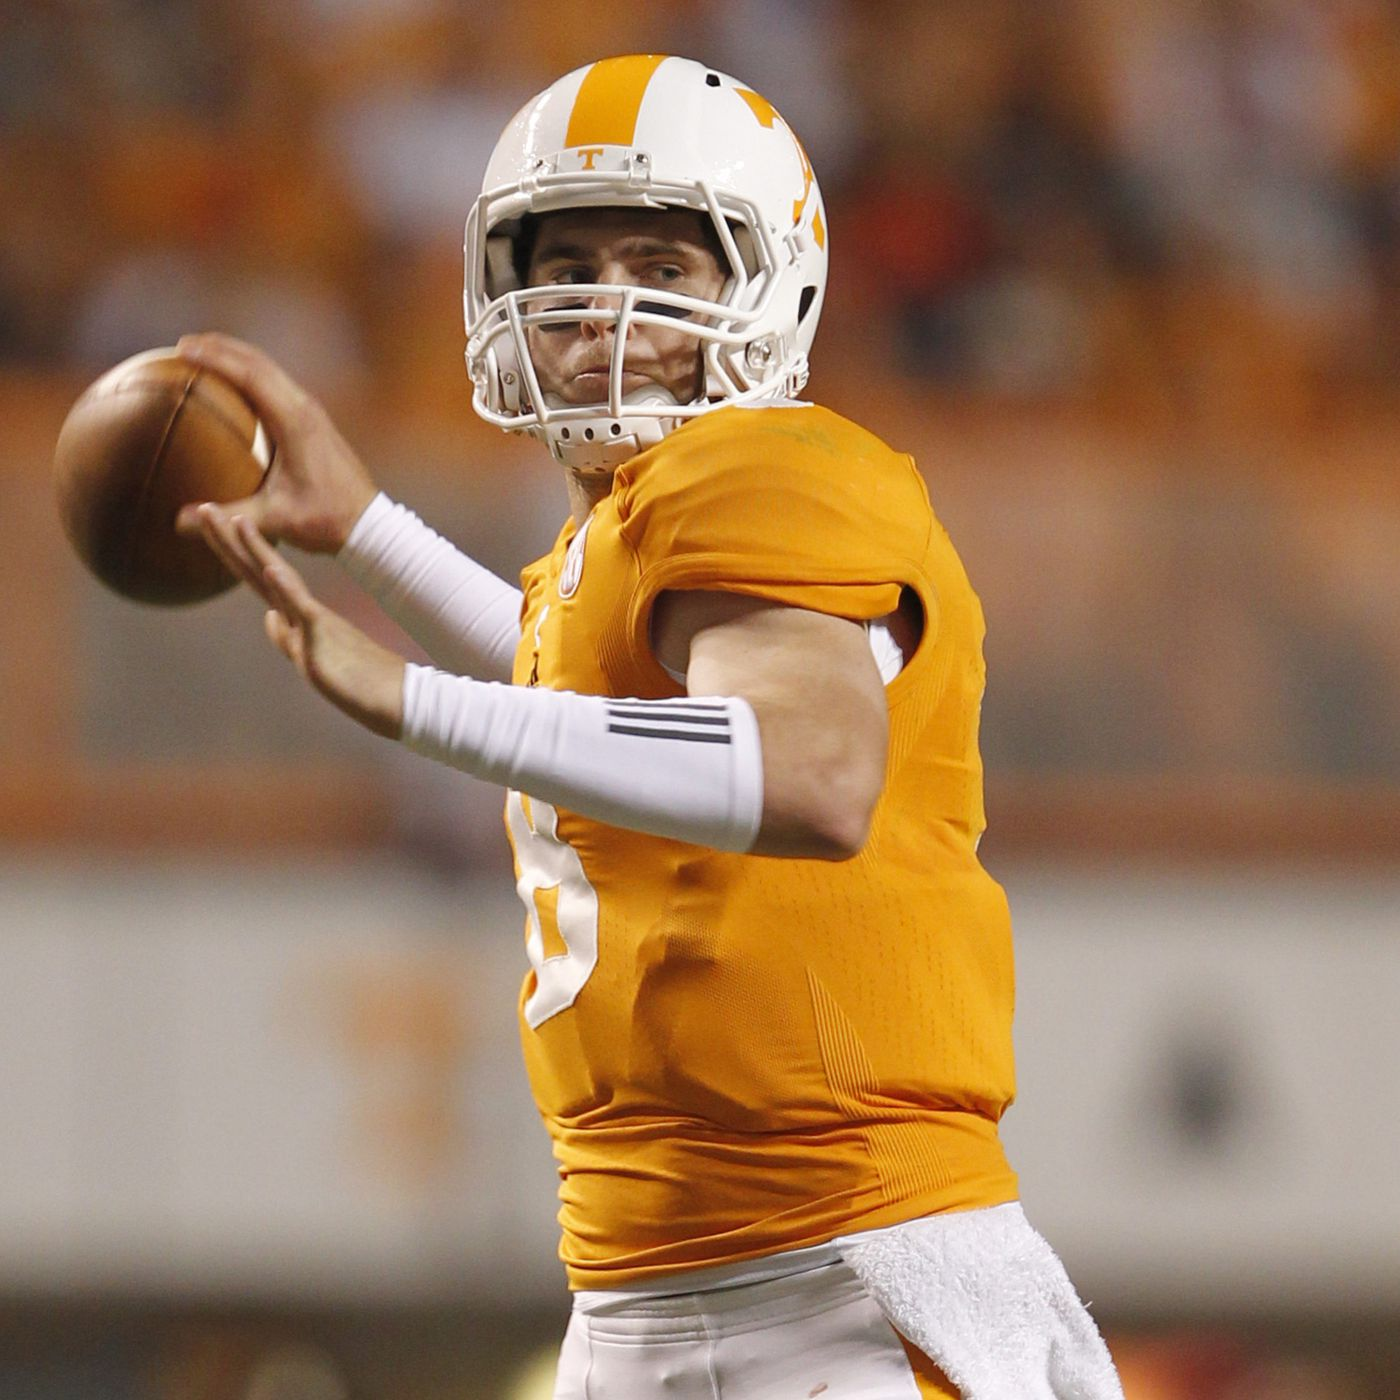 reputable site f62a2 c4a82 Tyler Bray's dad tells newspaper the Steelers told him they ...